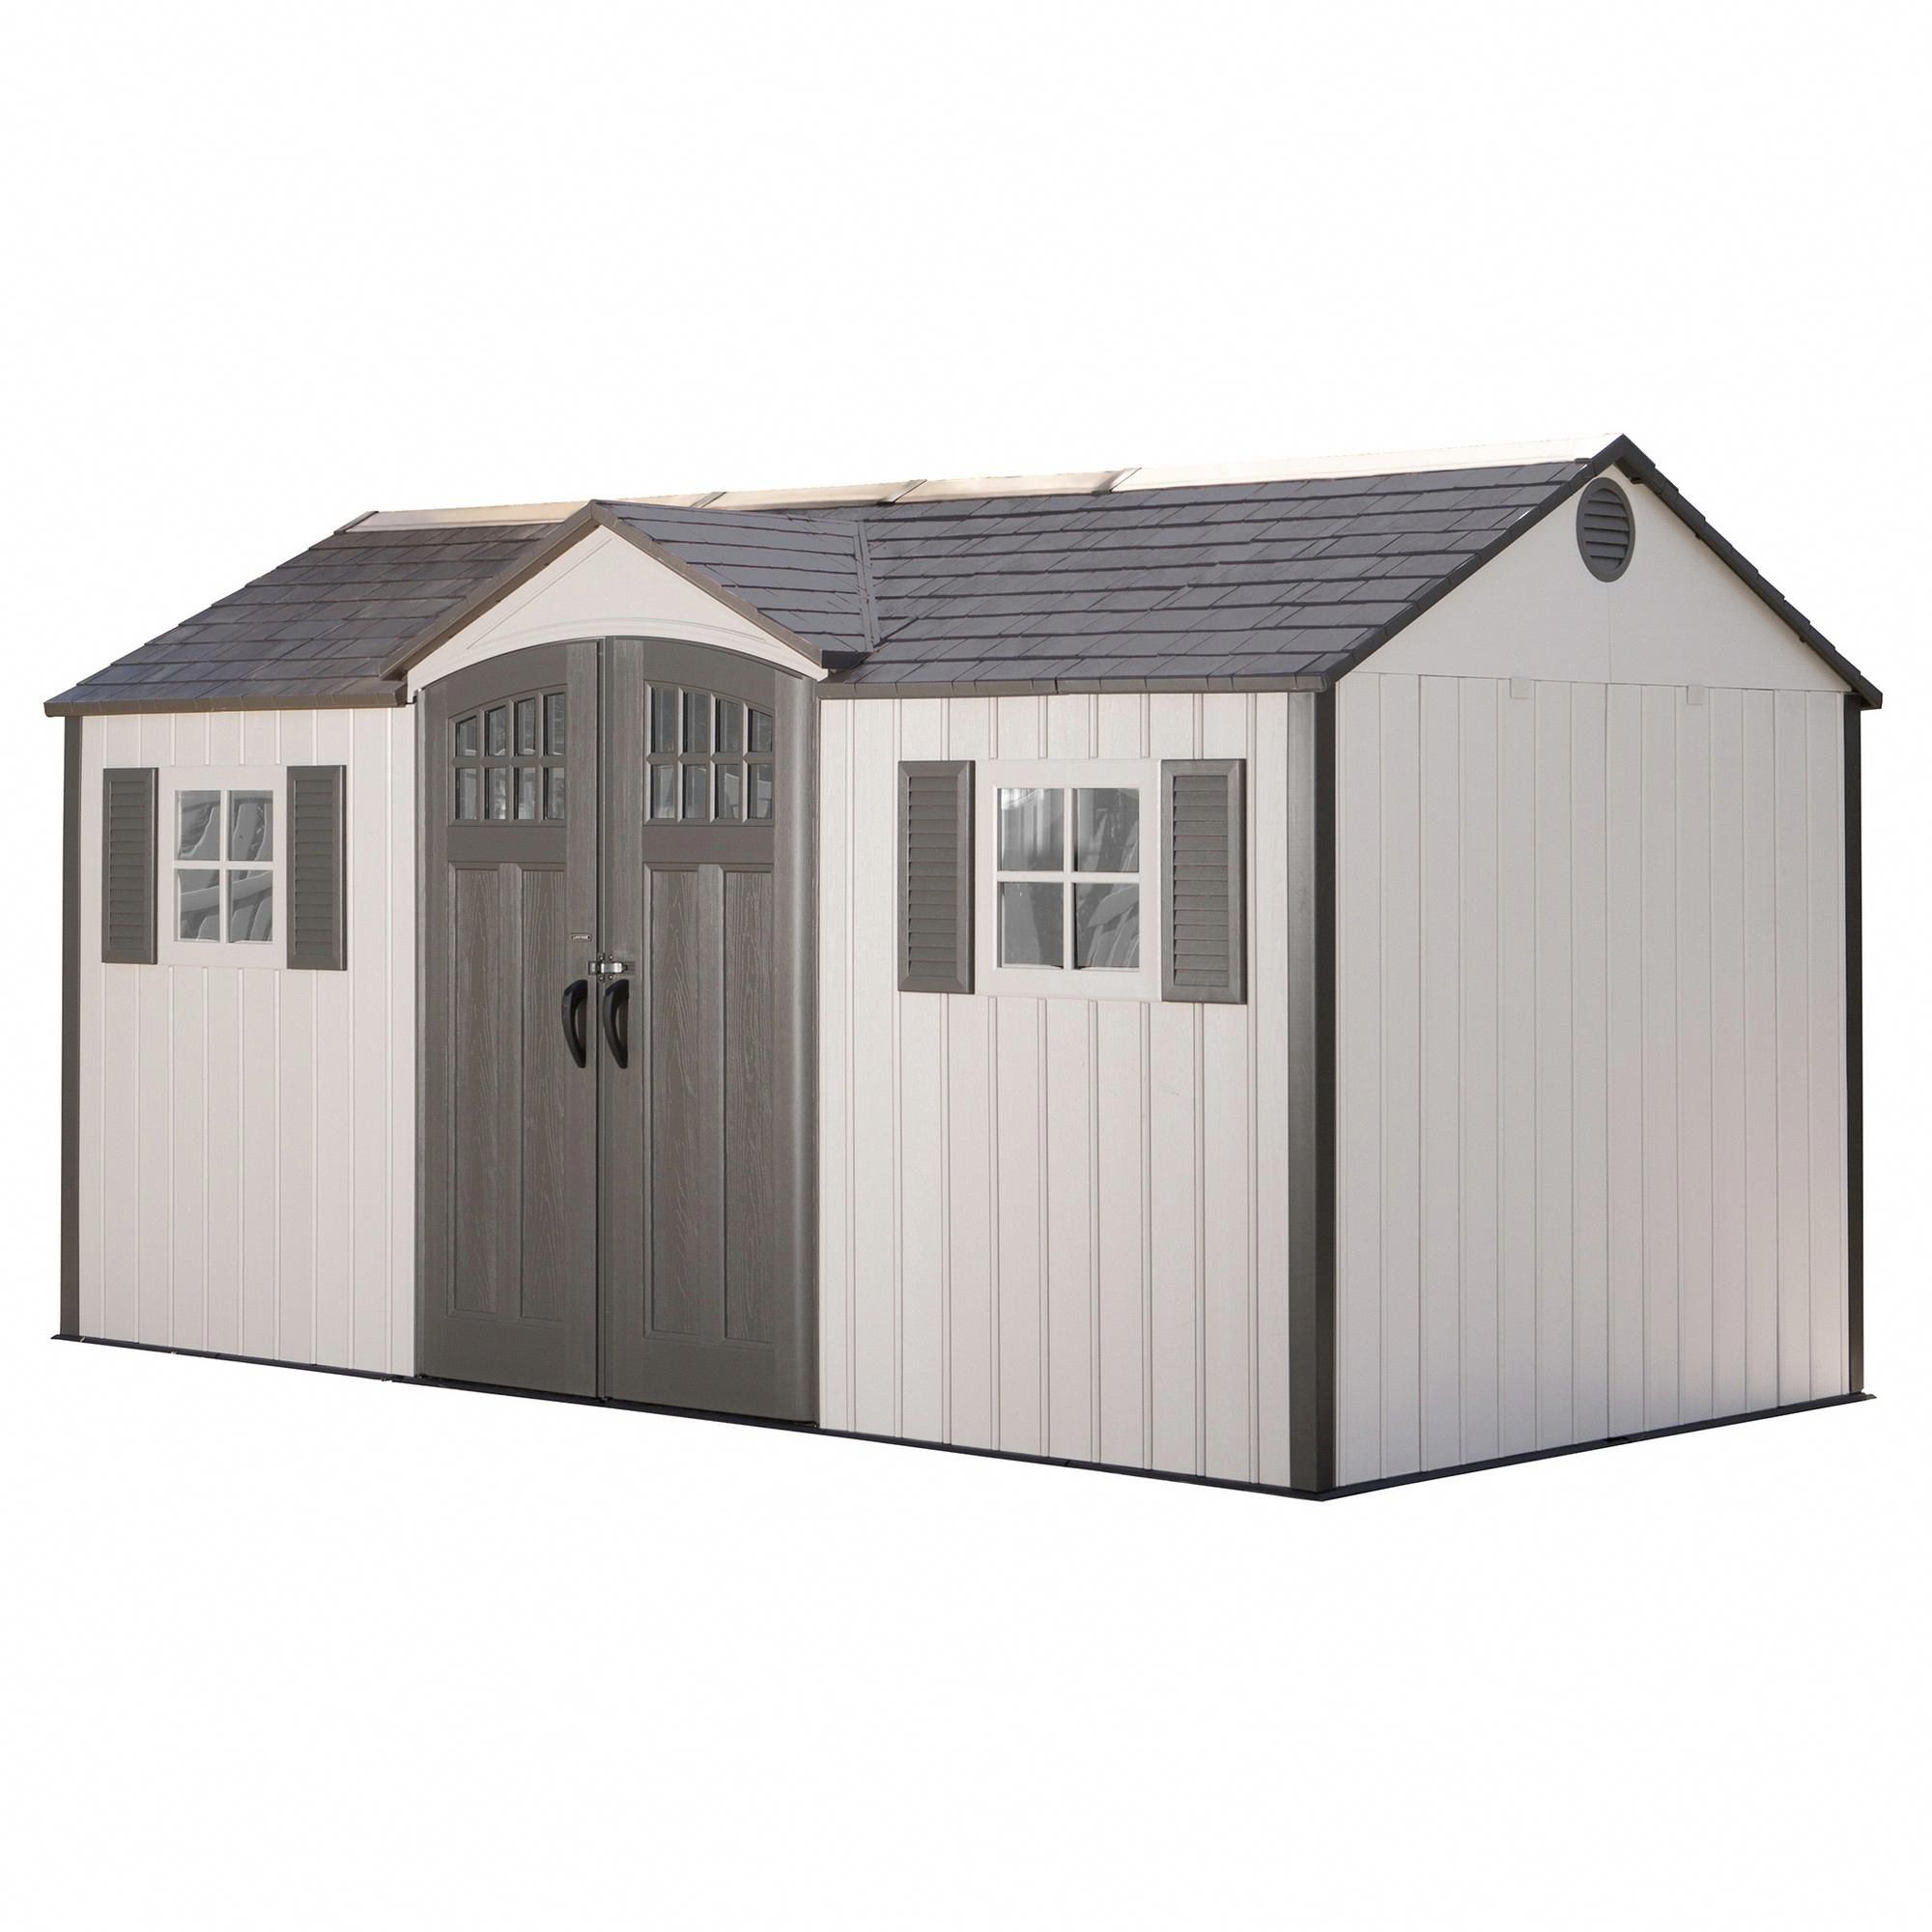 Storage Building Shed 15 X 8 Desert Sand Lifetime Gray Shedkits Wood Shed Plans Building A Shed Diy Shed Plans